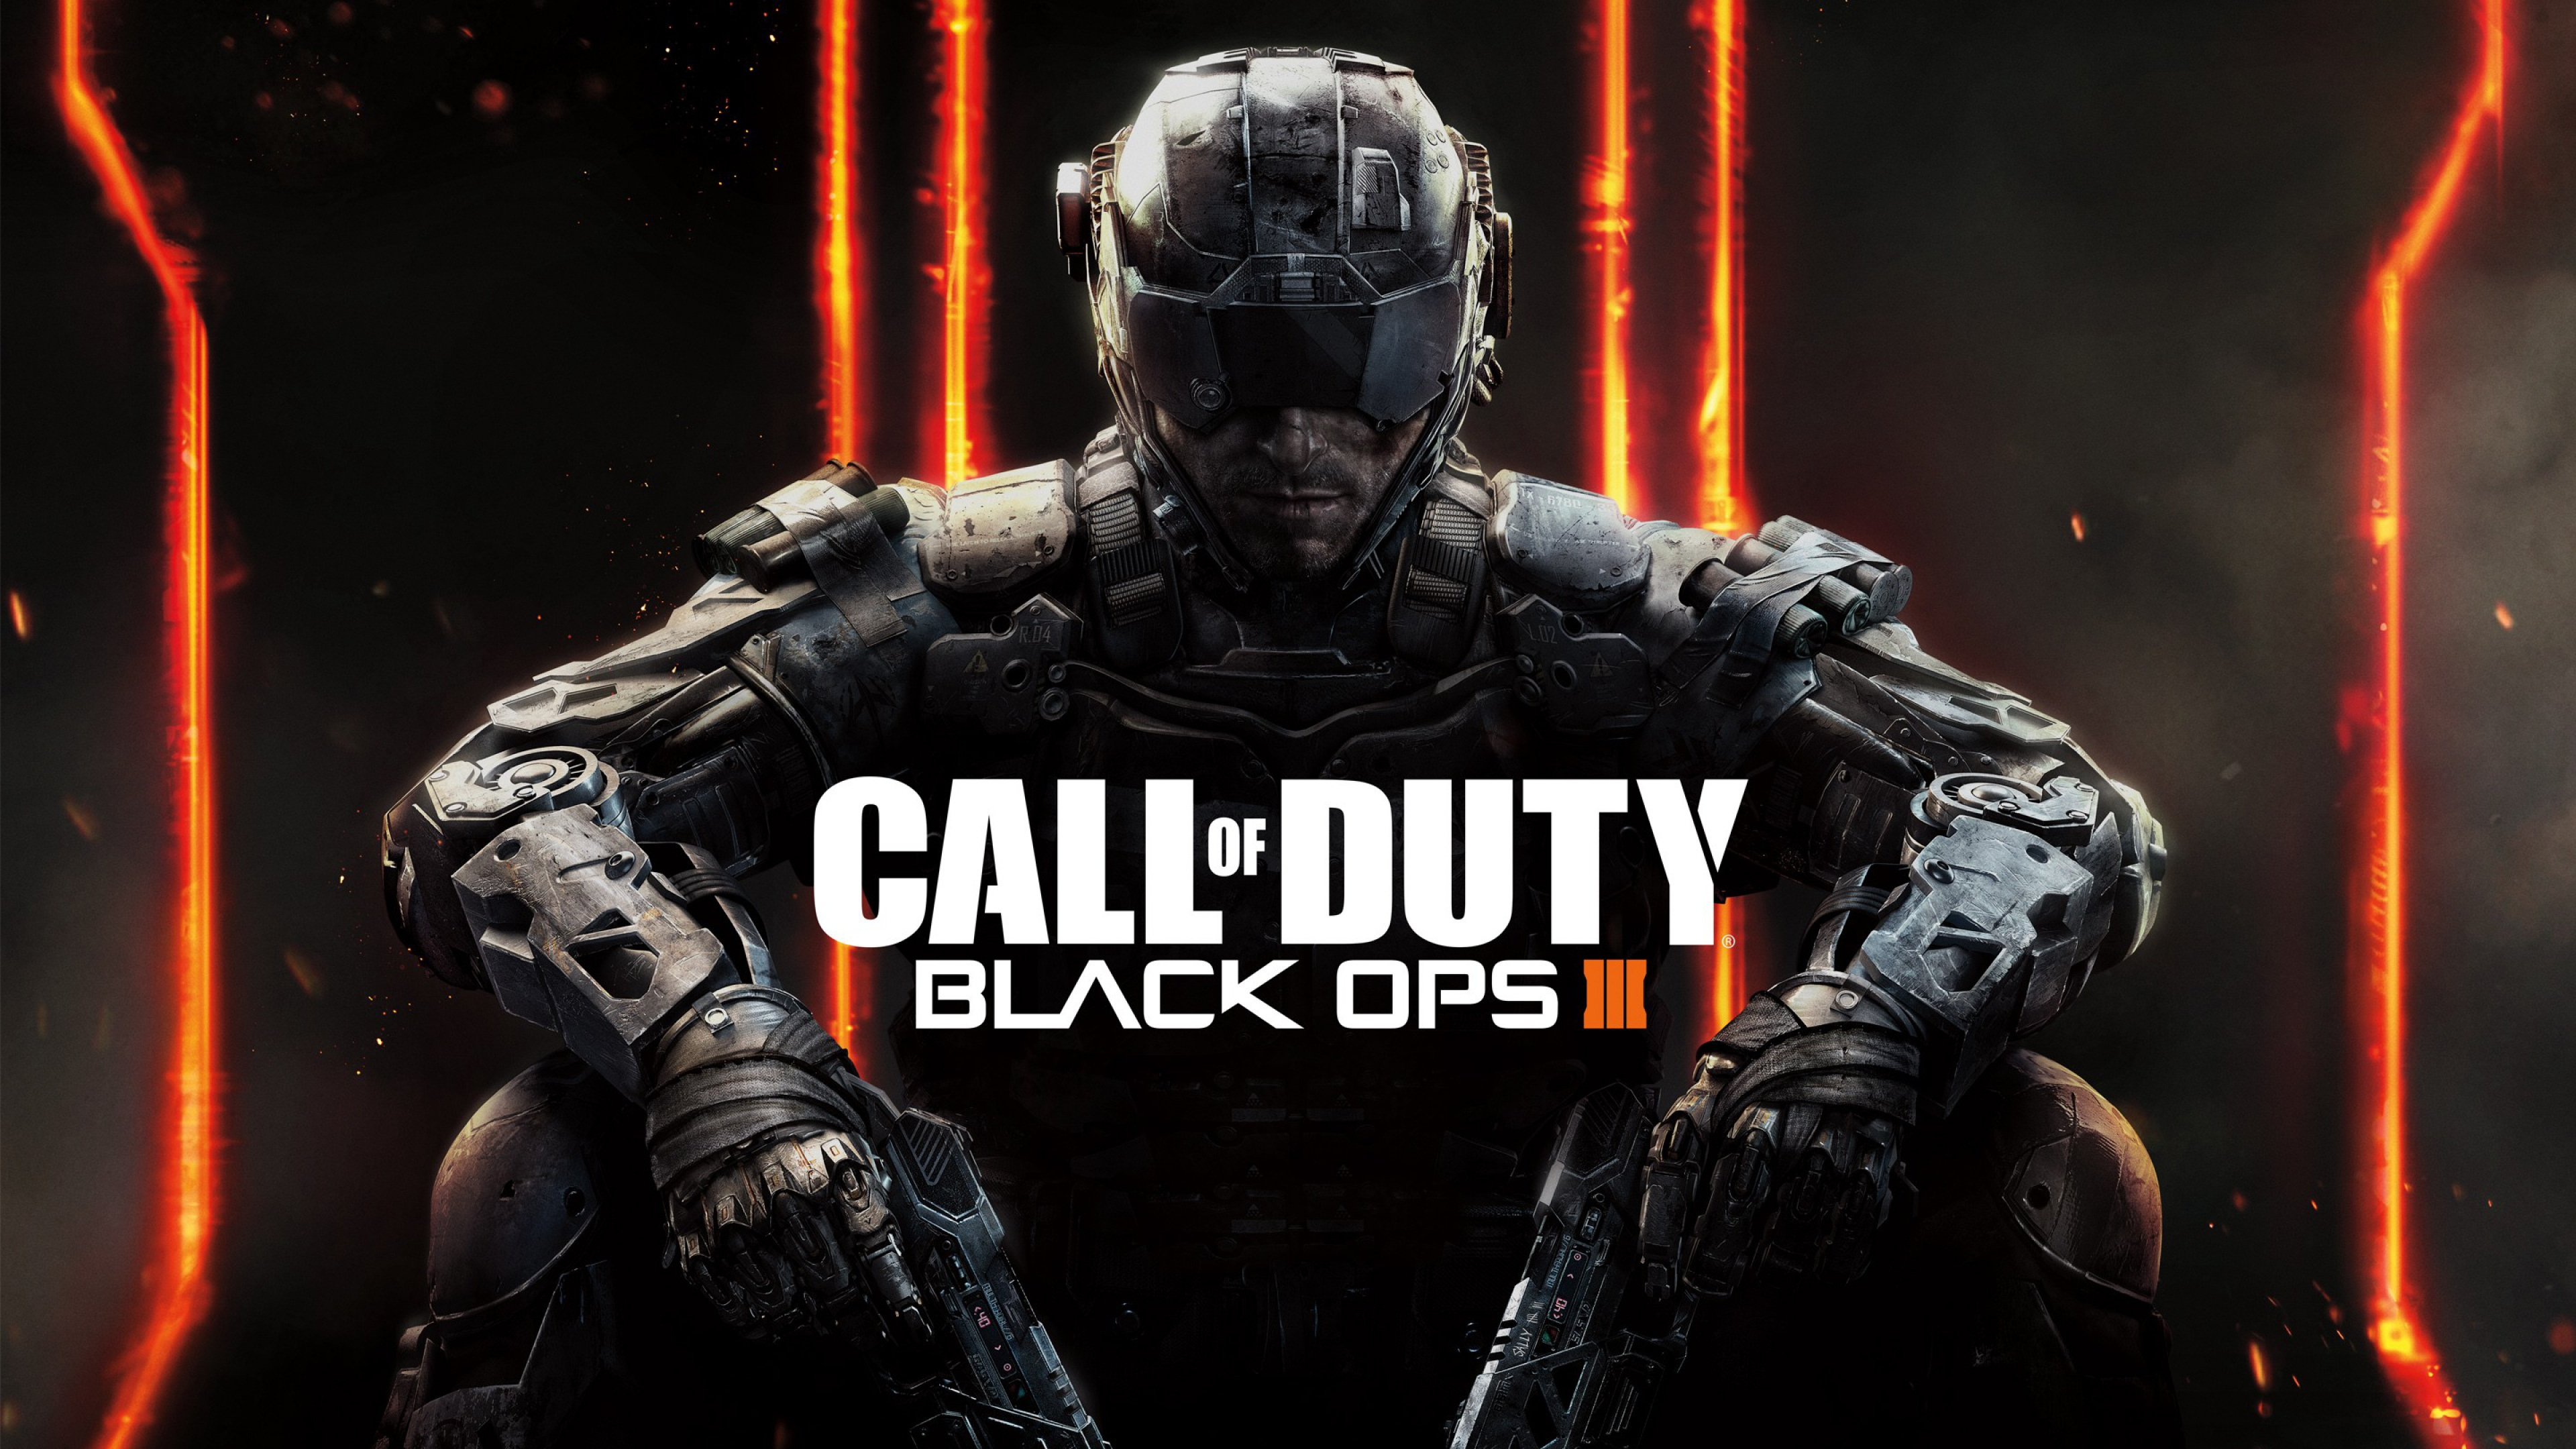 call of duty black ops 3 1535966340 - Call of Duty Black Ops 3 - xbox games wallpapers, ps4 wallpapers, games wallpapers, call of duty black ops wallpapers